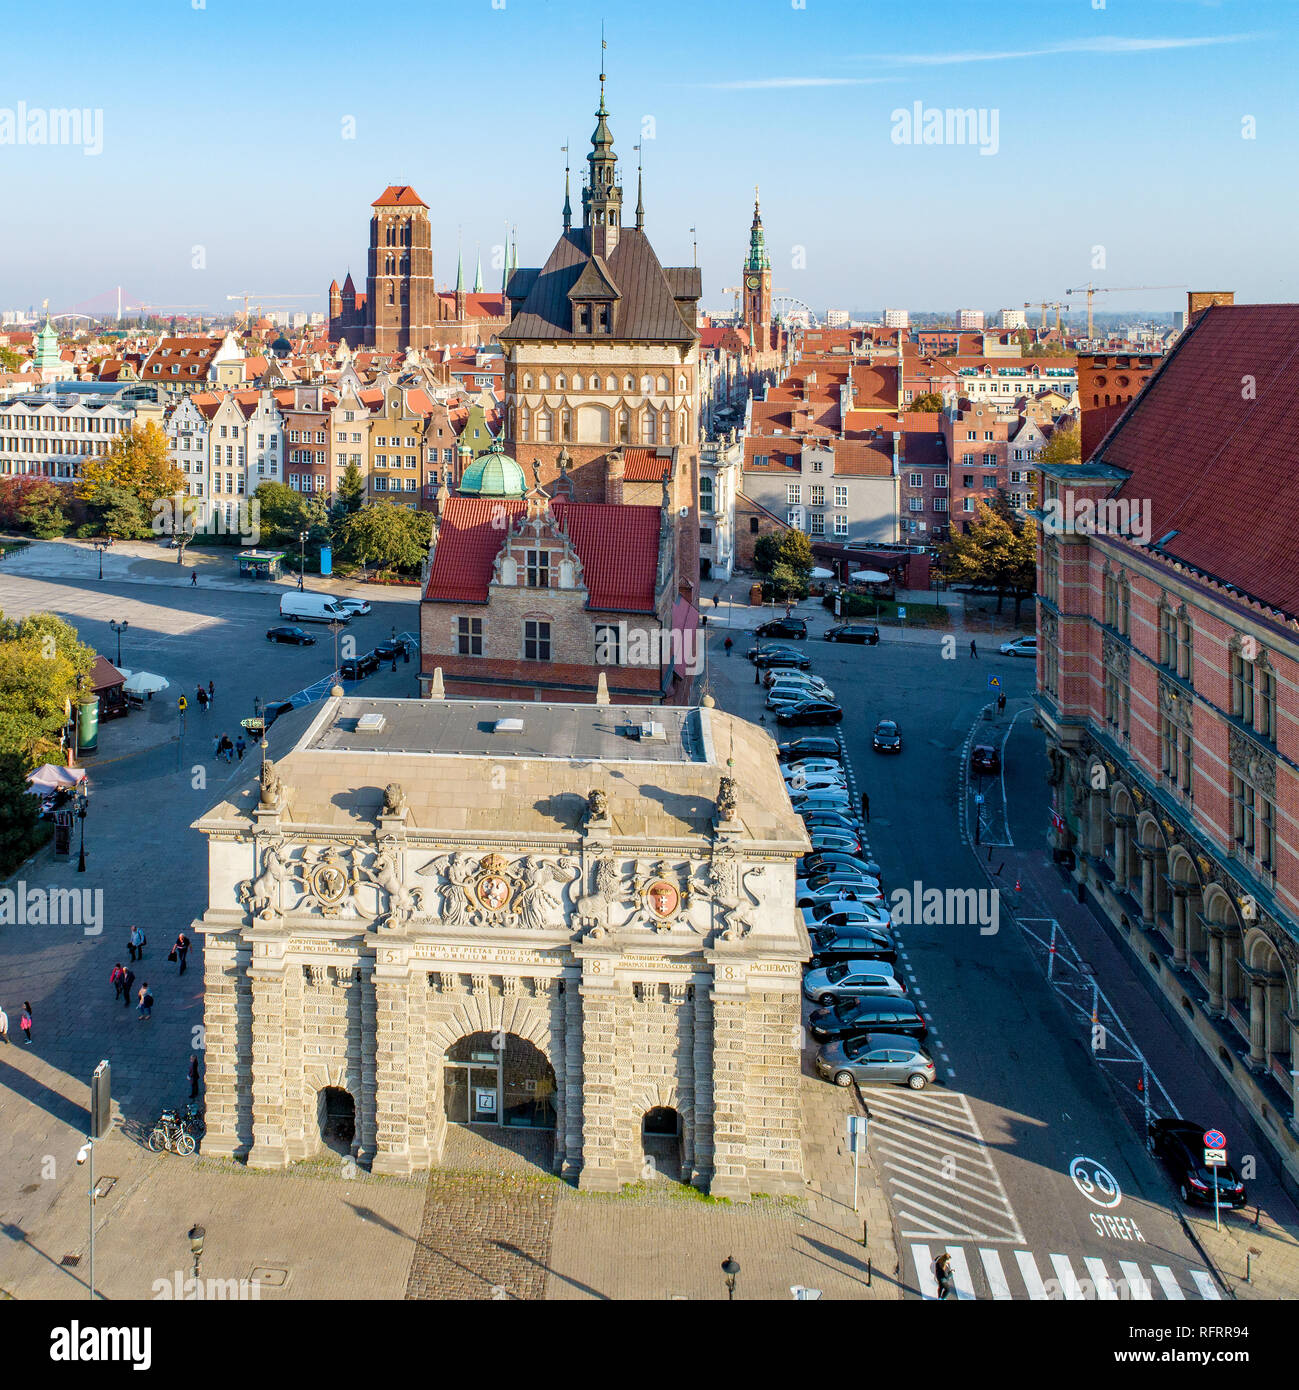 Gdansk, Poland. Old city with Renaissance Gate, called Brama Wyzynna ,  (Upland or High Gate) Prison Gate with torture chamber, St Mary church tower - Stock Image